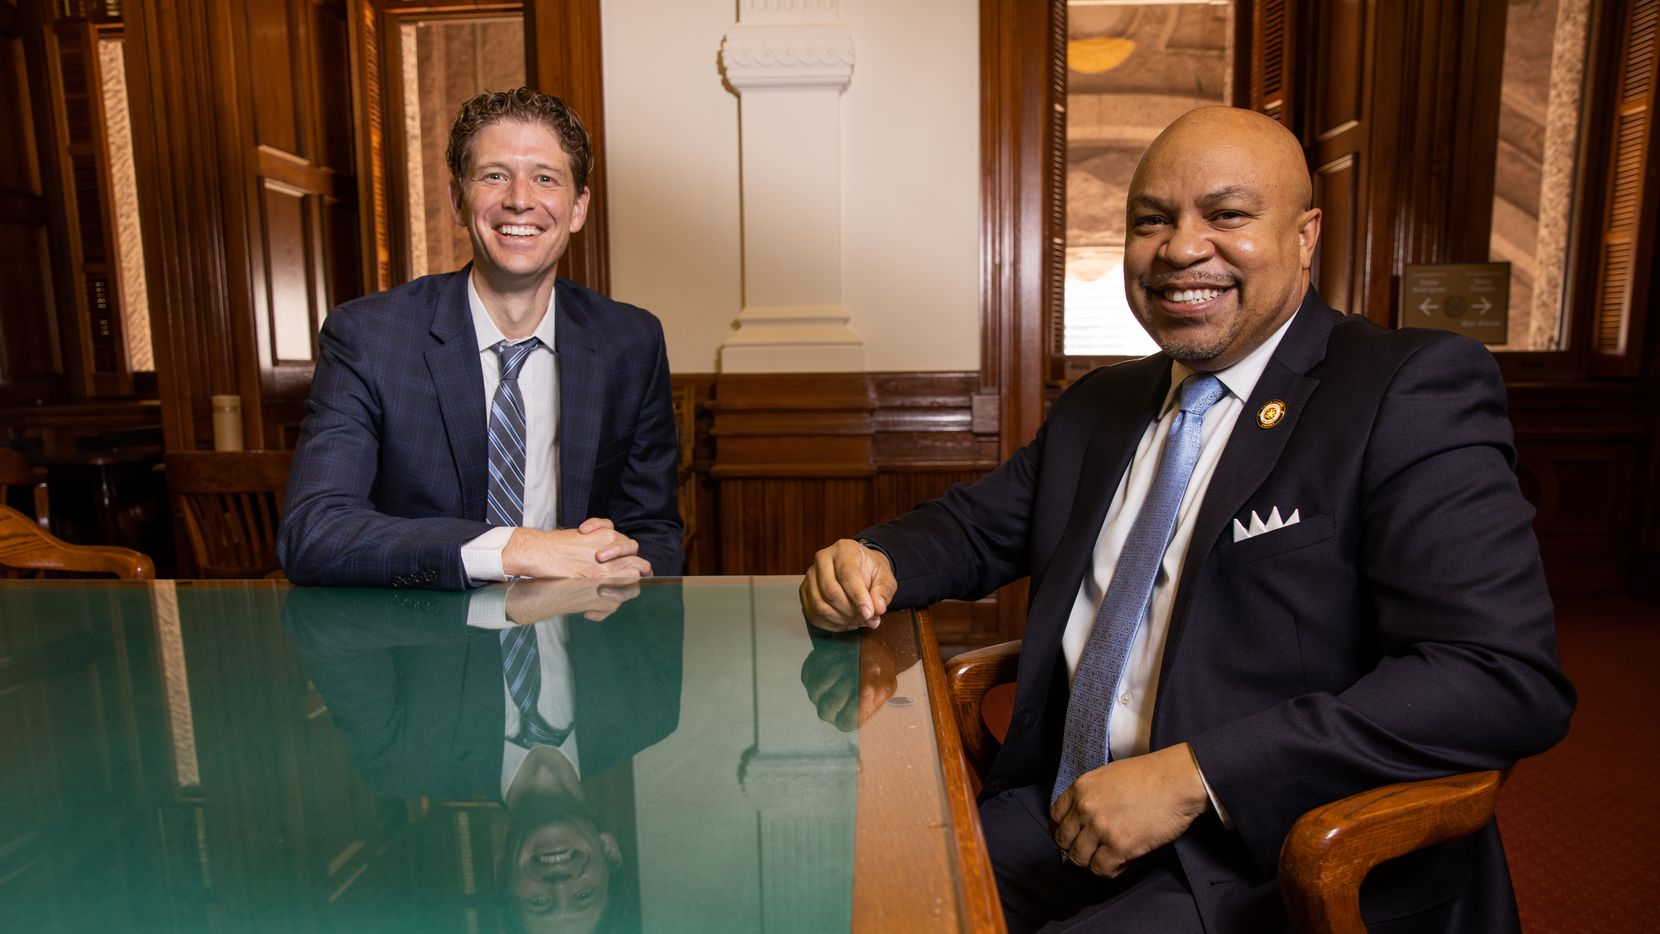 (From left) Rep. Matt Krause (R-Ft.Worth) and Carl Sherman (D-Desoto) pose for a photo at the Texas Capitol in Austin on Tuesday, March 16, 2021. (Juan Figueroa/ The Dallas Morning News)